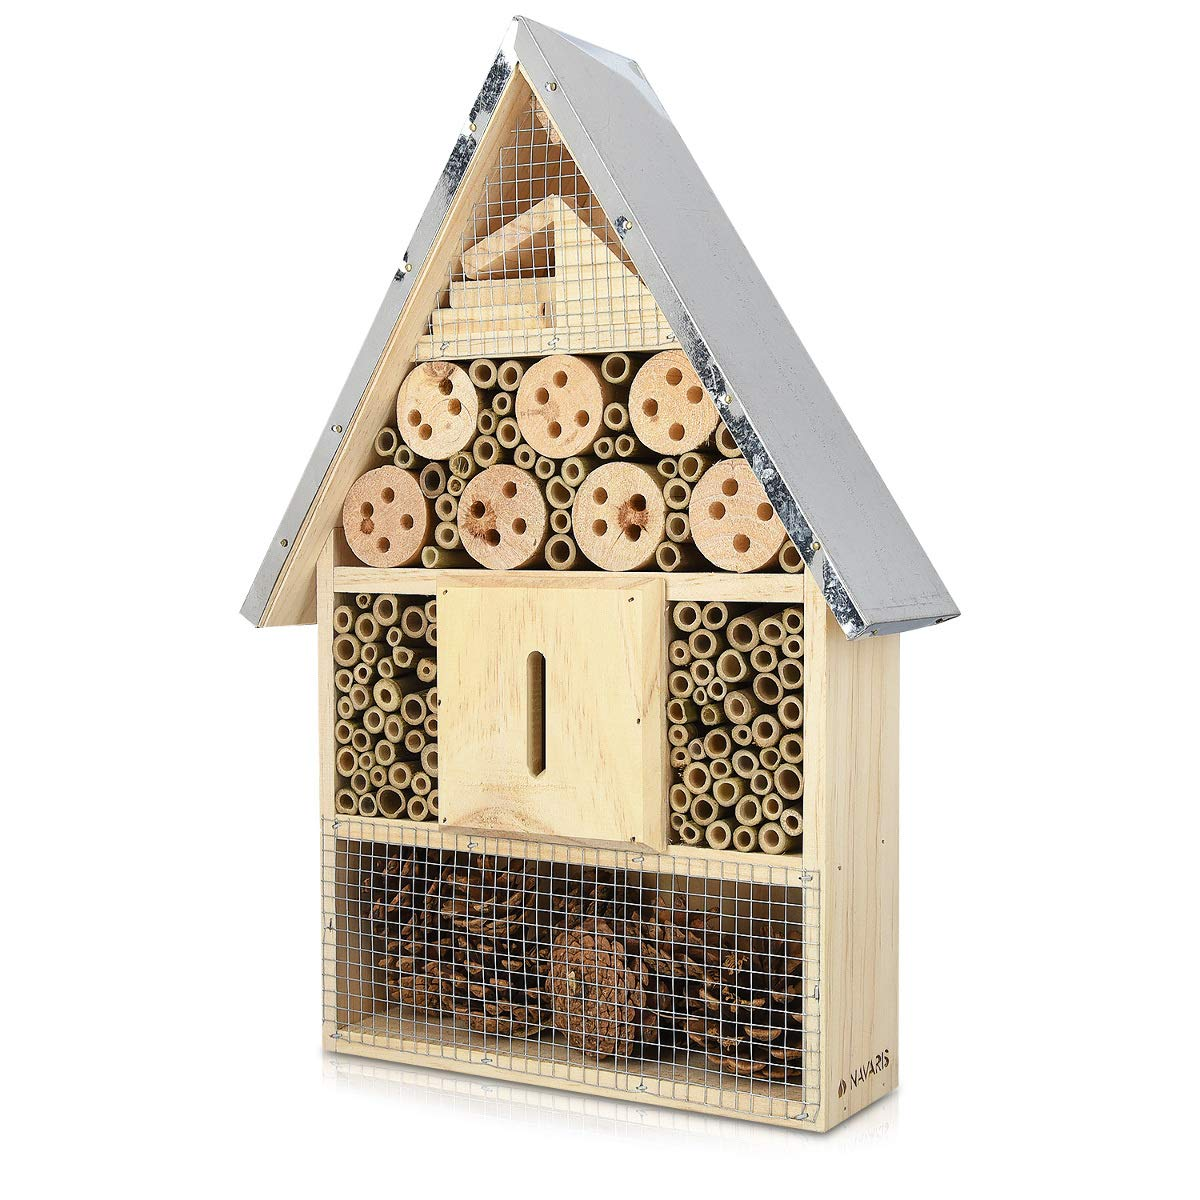 Navaris M Wooden Insect Hotel - 24.5 x 28 x 7.5 cm - Natural Wood Insect House - Garden Shelter Bamboo Nesting Habitat Bees Butterflies Ladybugs KW-Commerce 44341_m000676